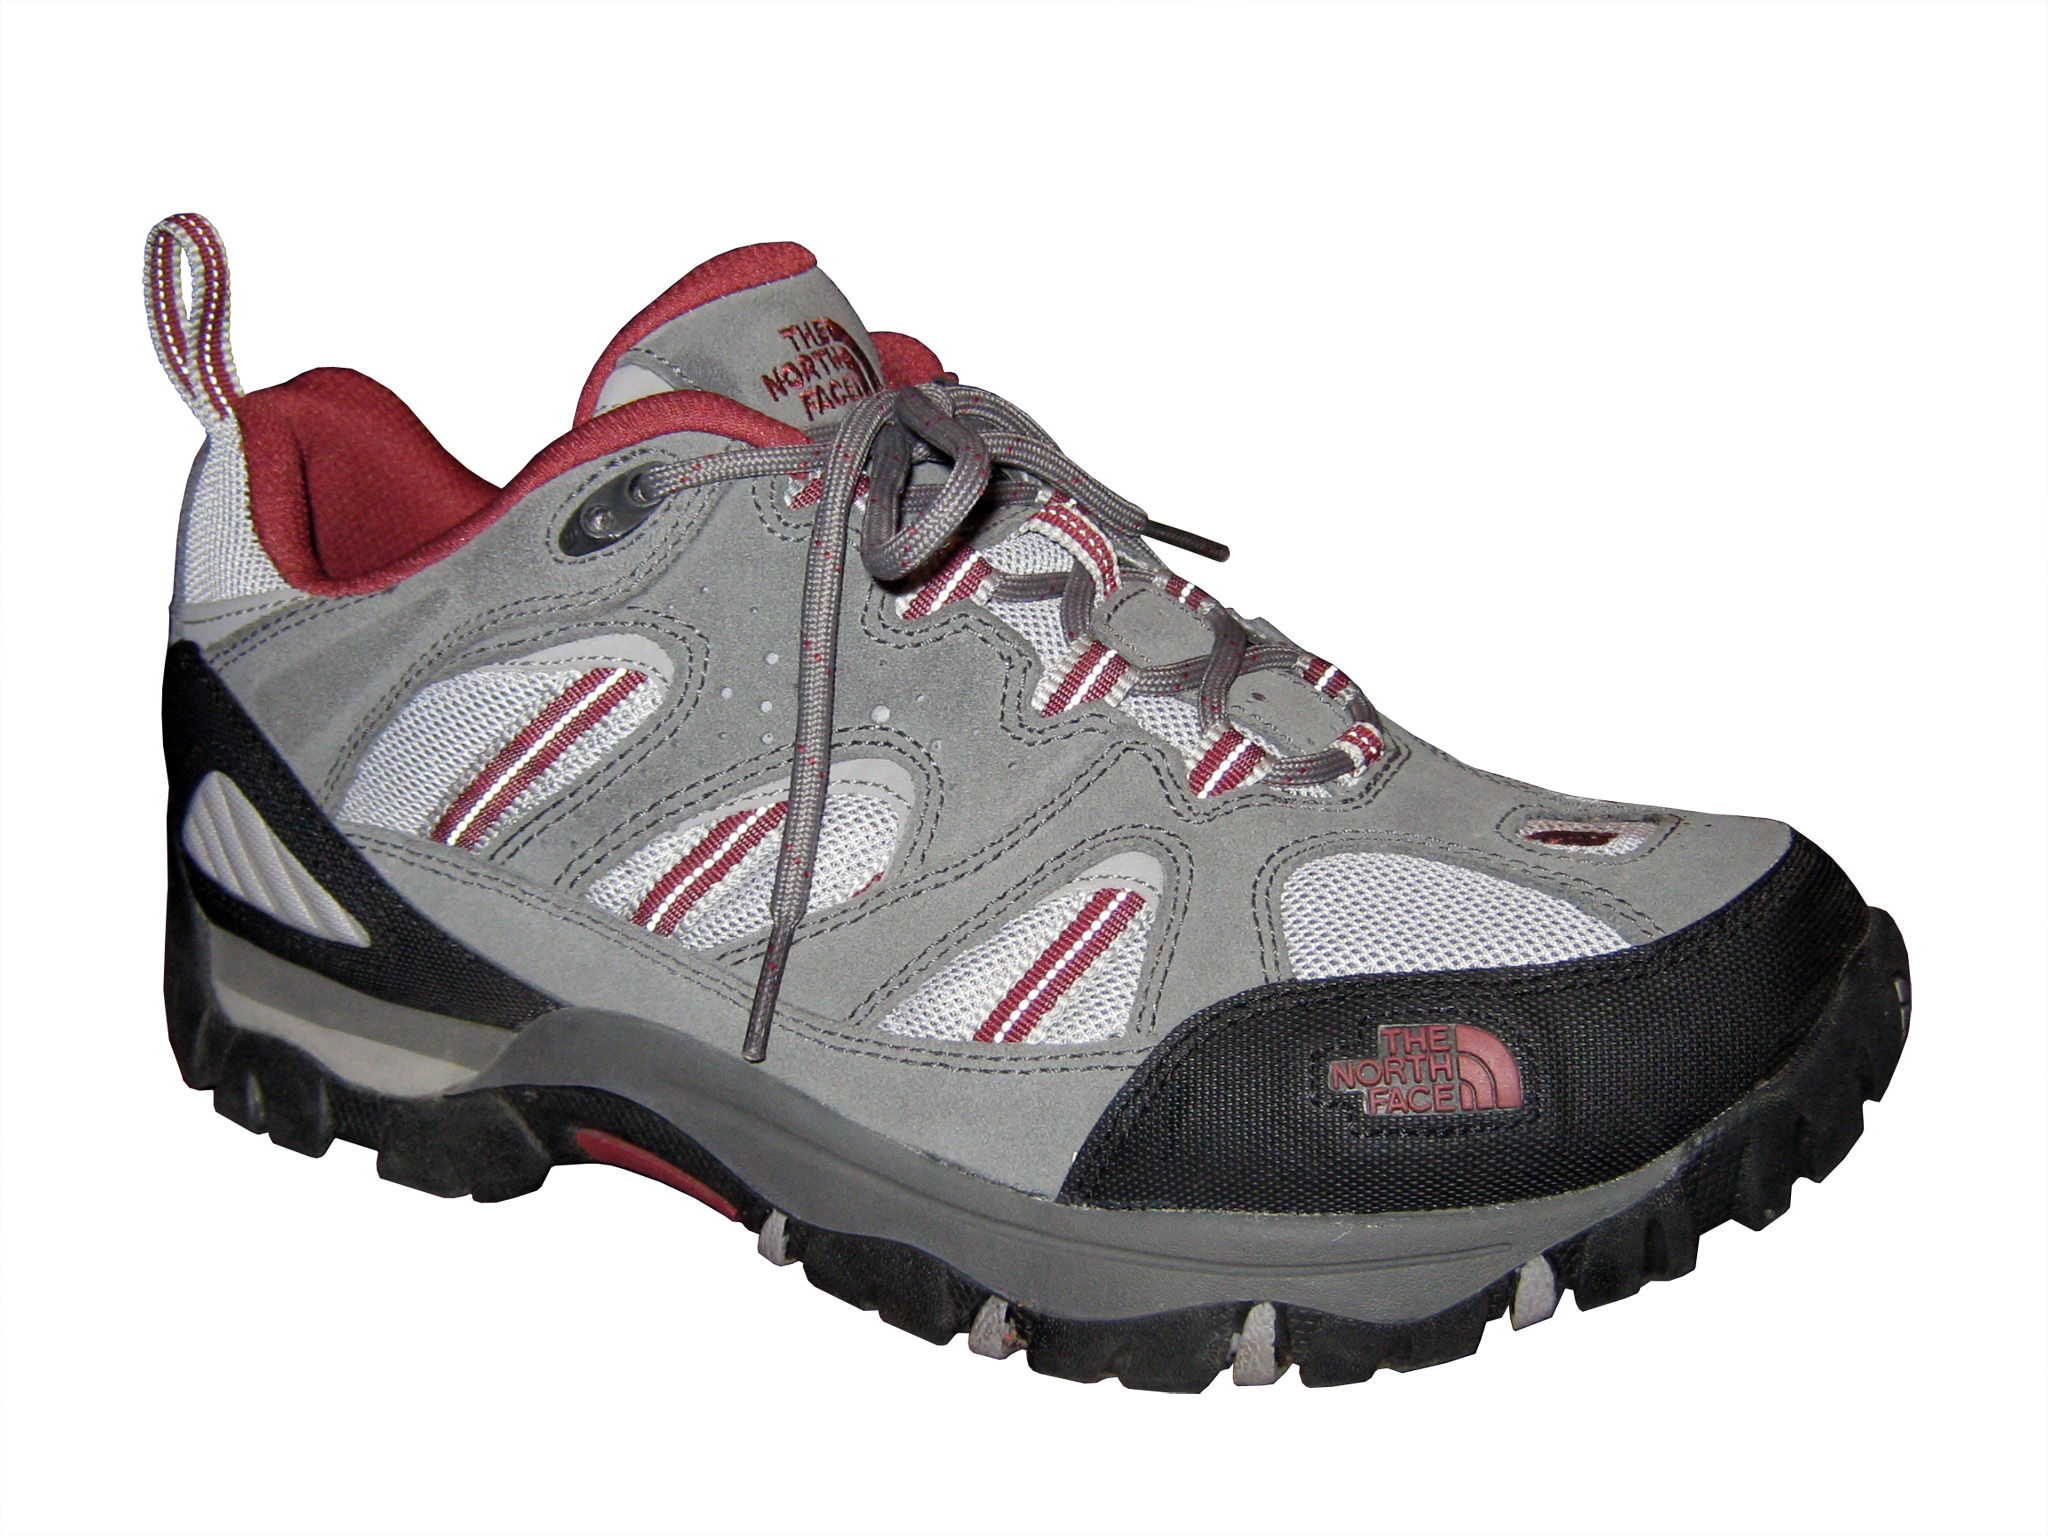 North Face Hiking Shoes Mens